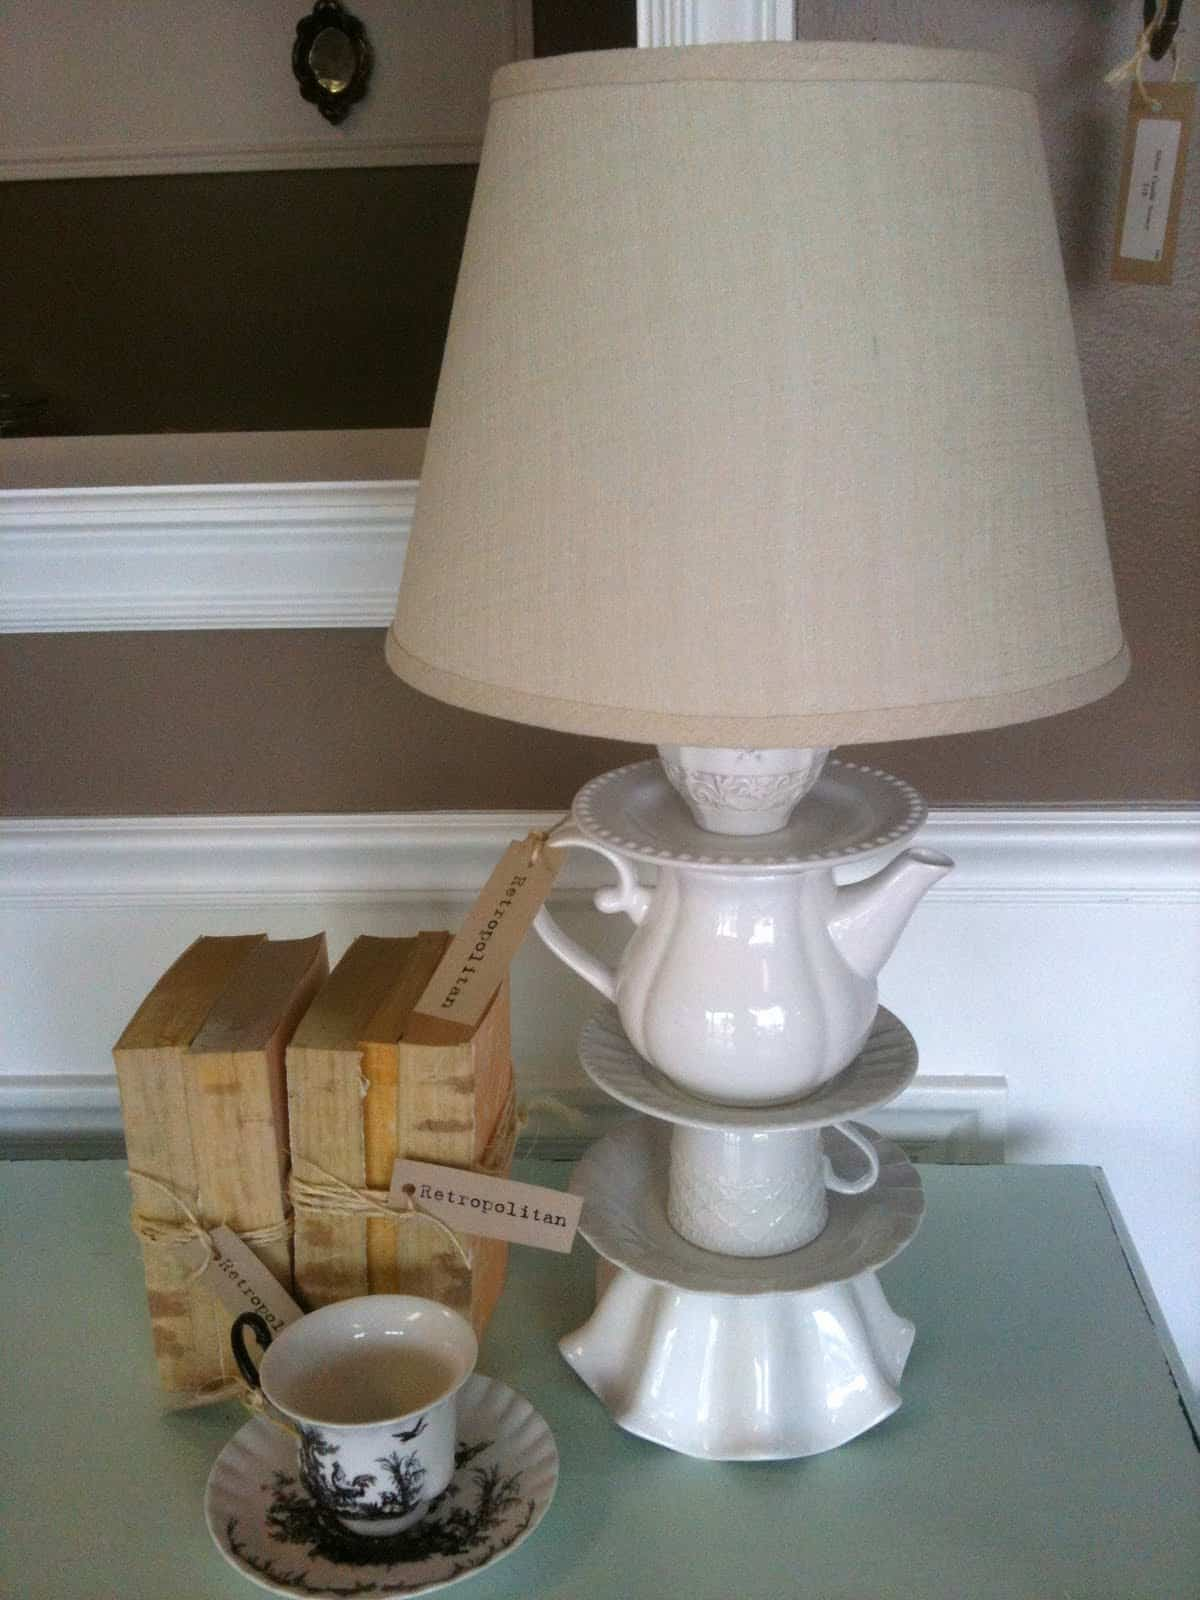 Teacupt and teapot table lamp Repurposing Teacups and Tea Pots Into Home Decor